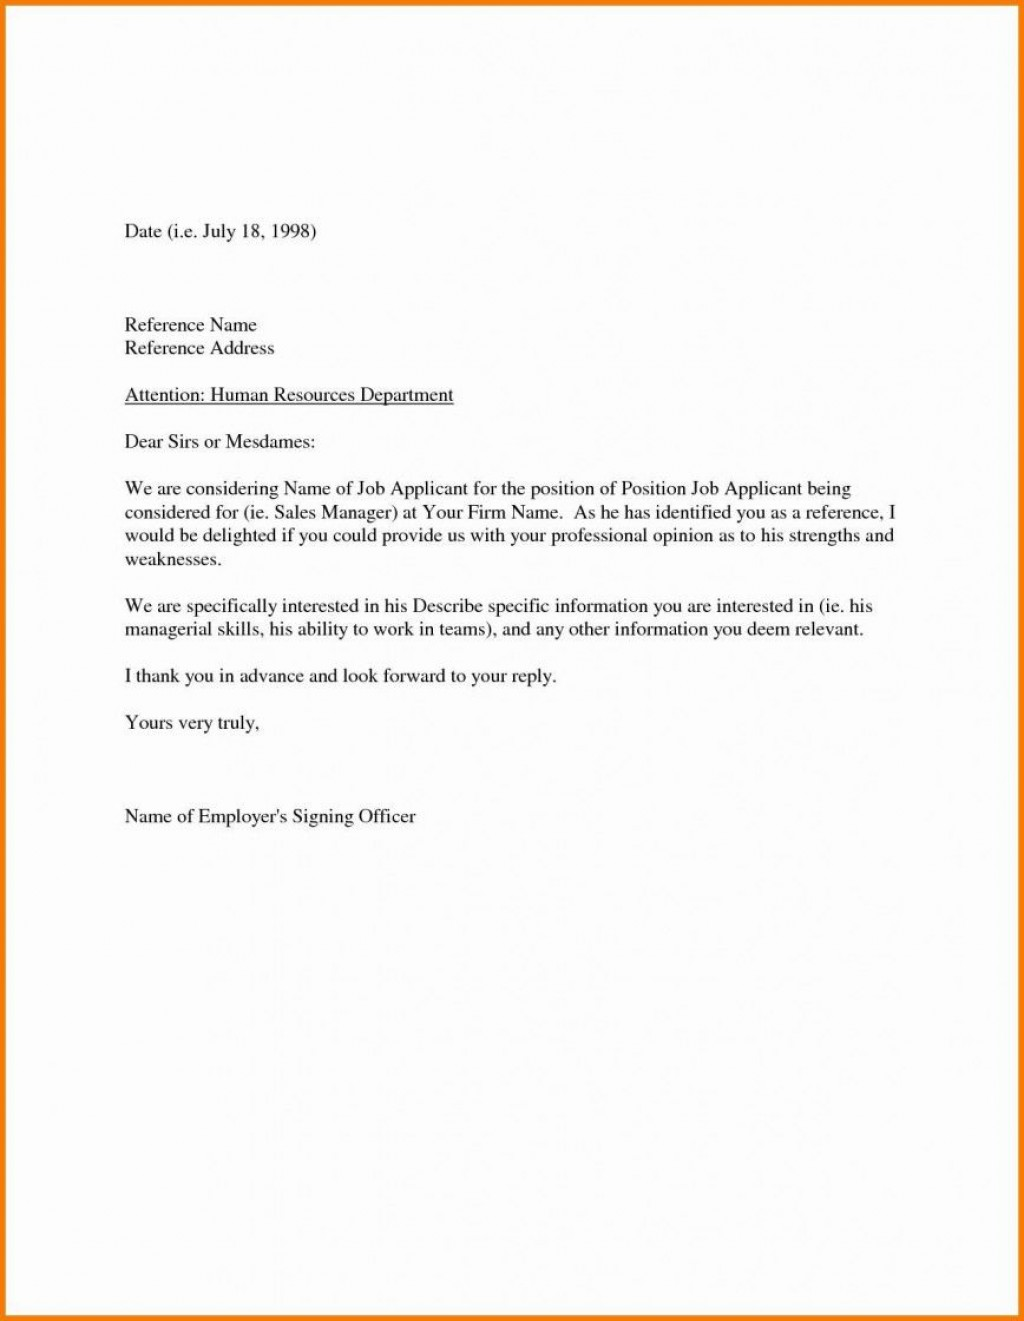 000 Top Professional Reference Letter Template Word Image Large